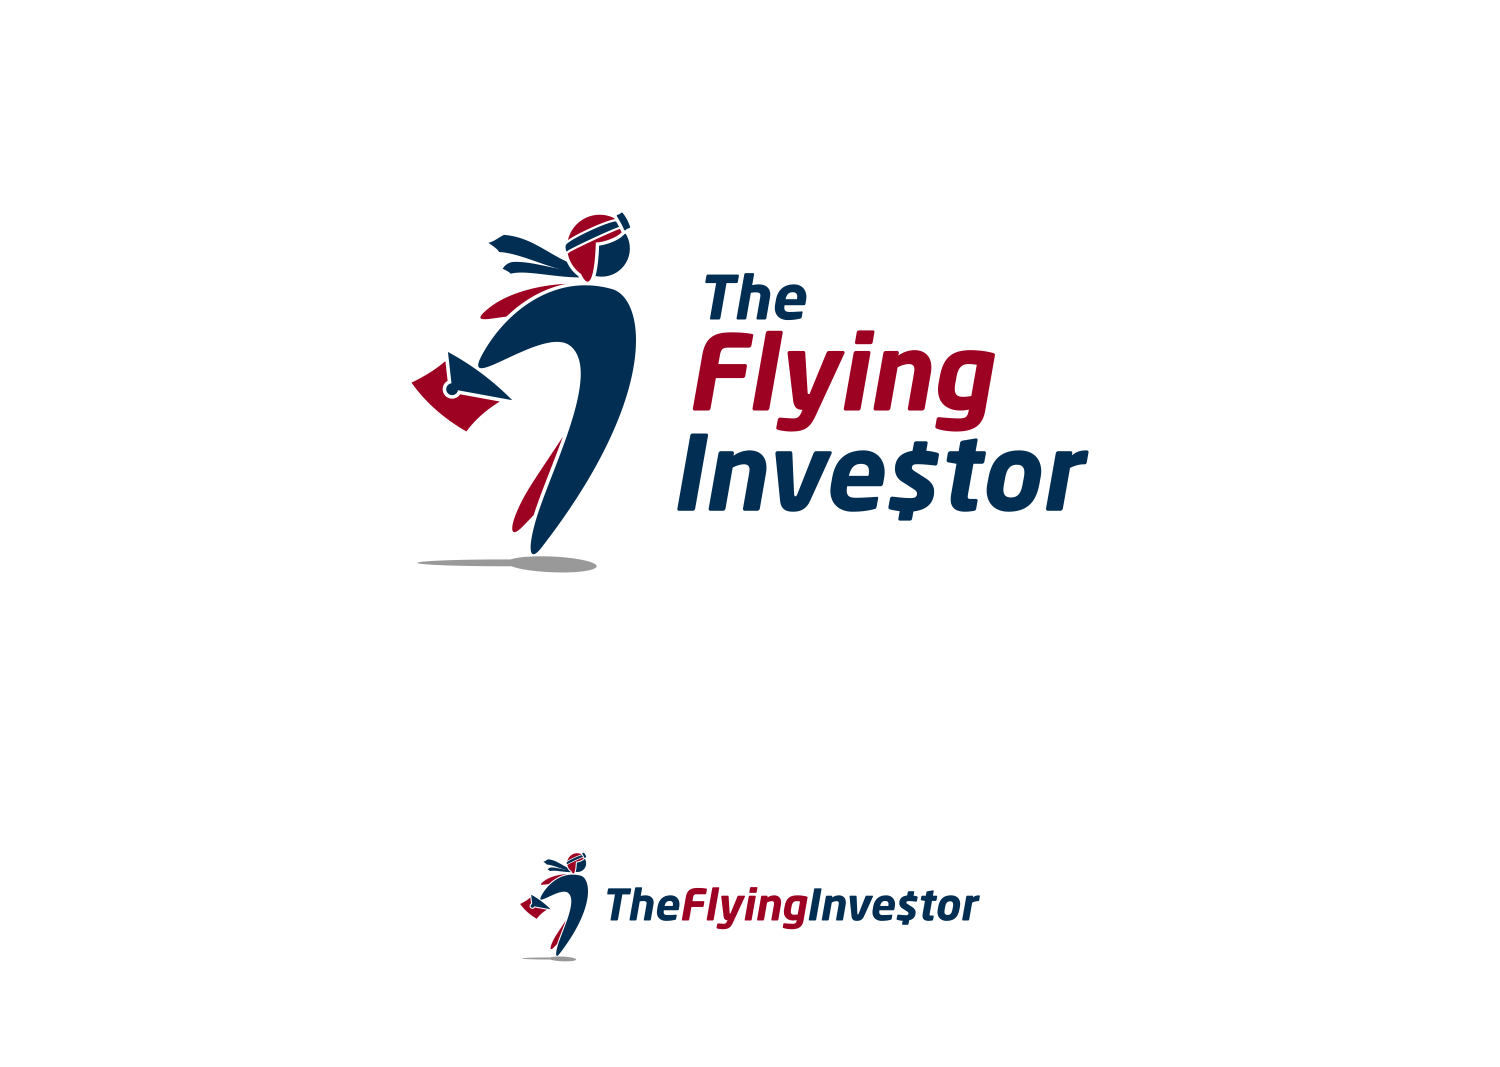 The best logo ever for The Flying Investor (If you sing it, it rhymes)